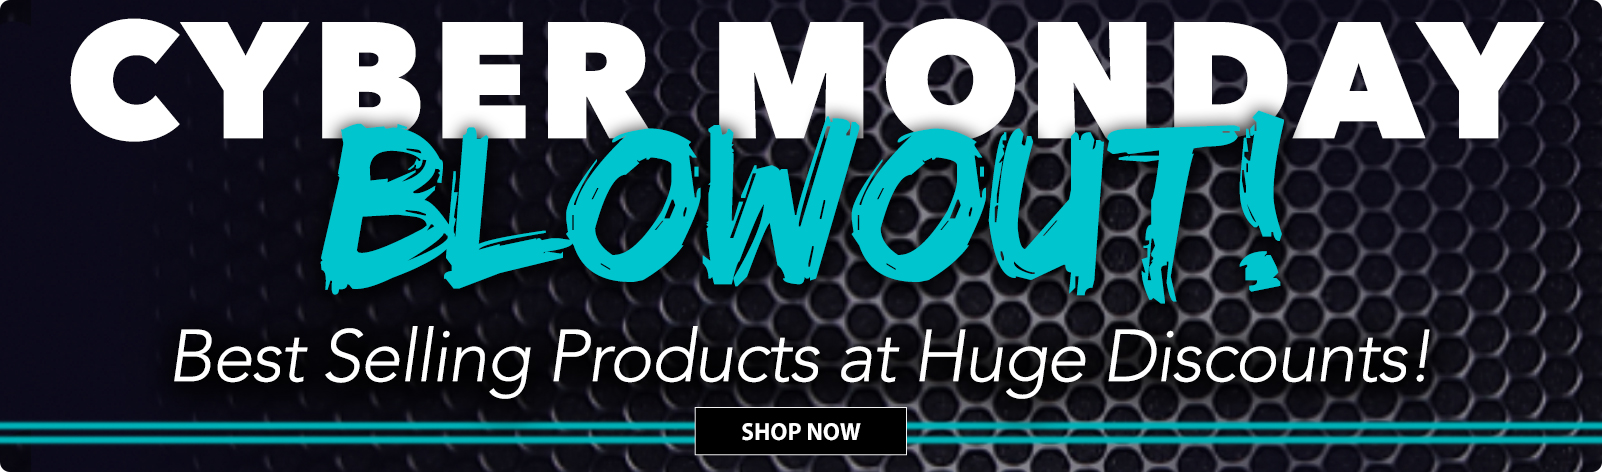 Best Sellig Products At Huge Discounts!